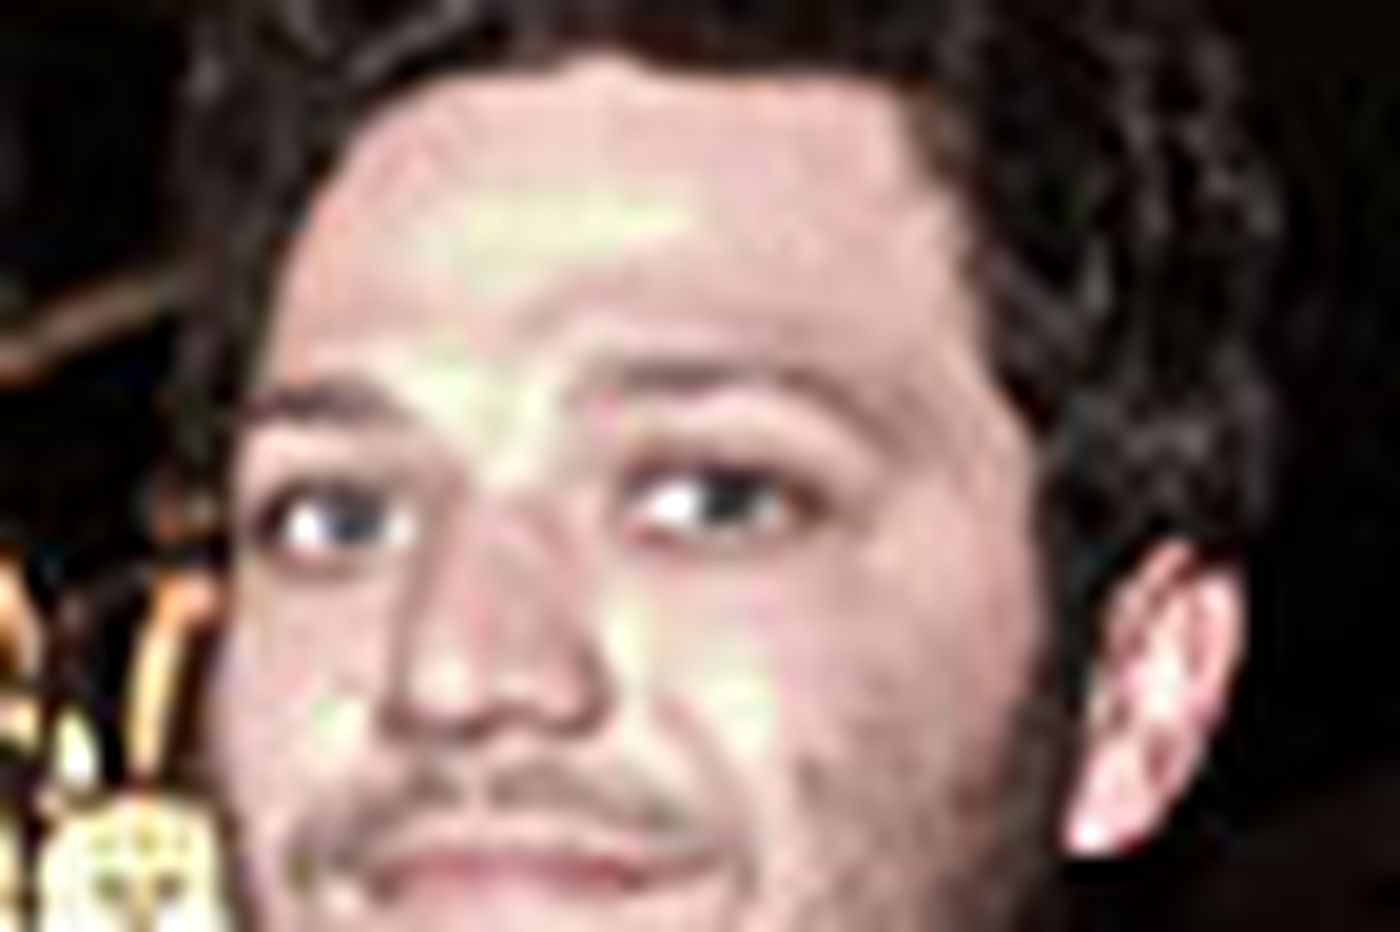 Dan Gross: Police: Woman hit 'Jackass' star Bam Margera with bat